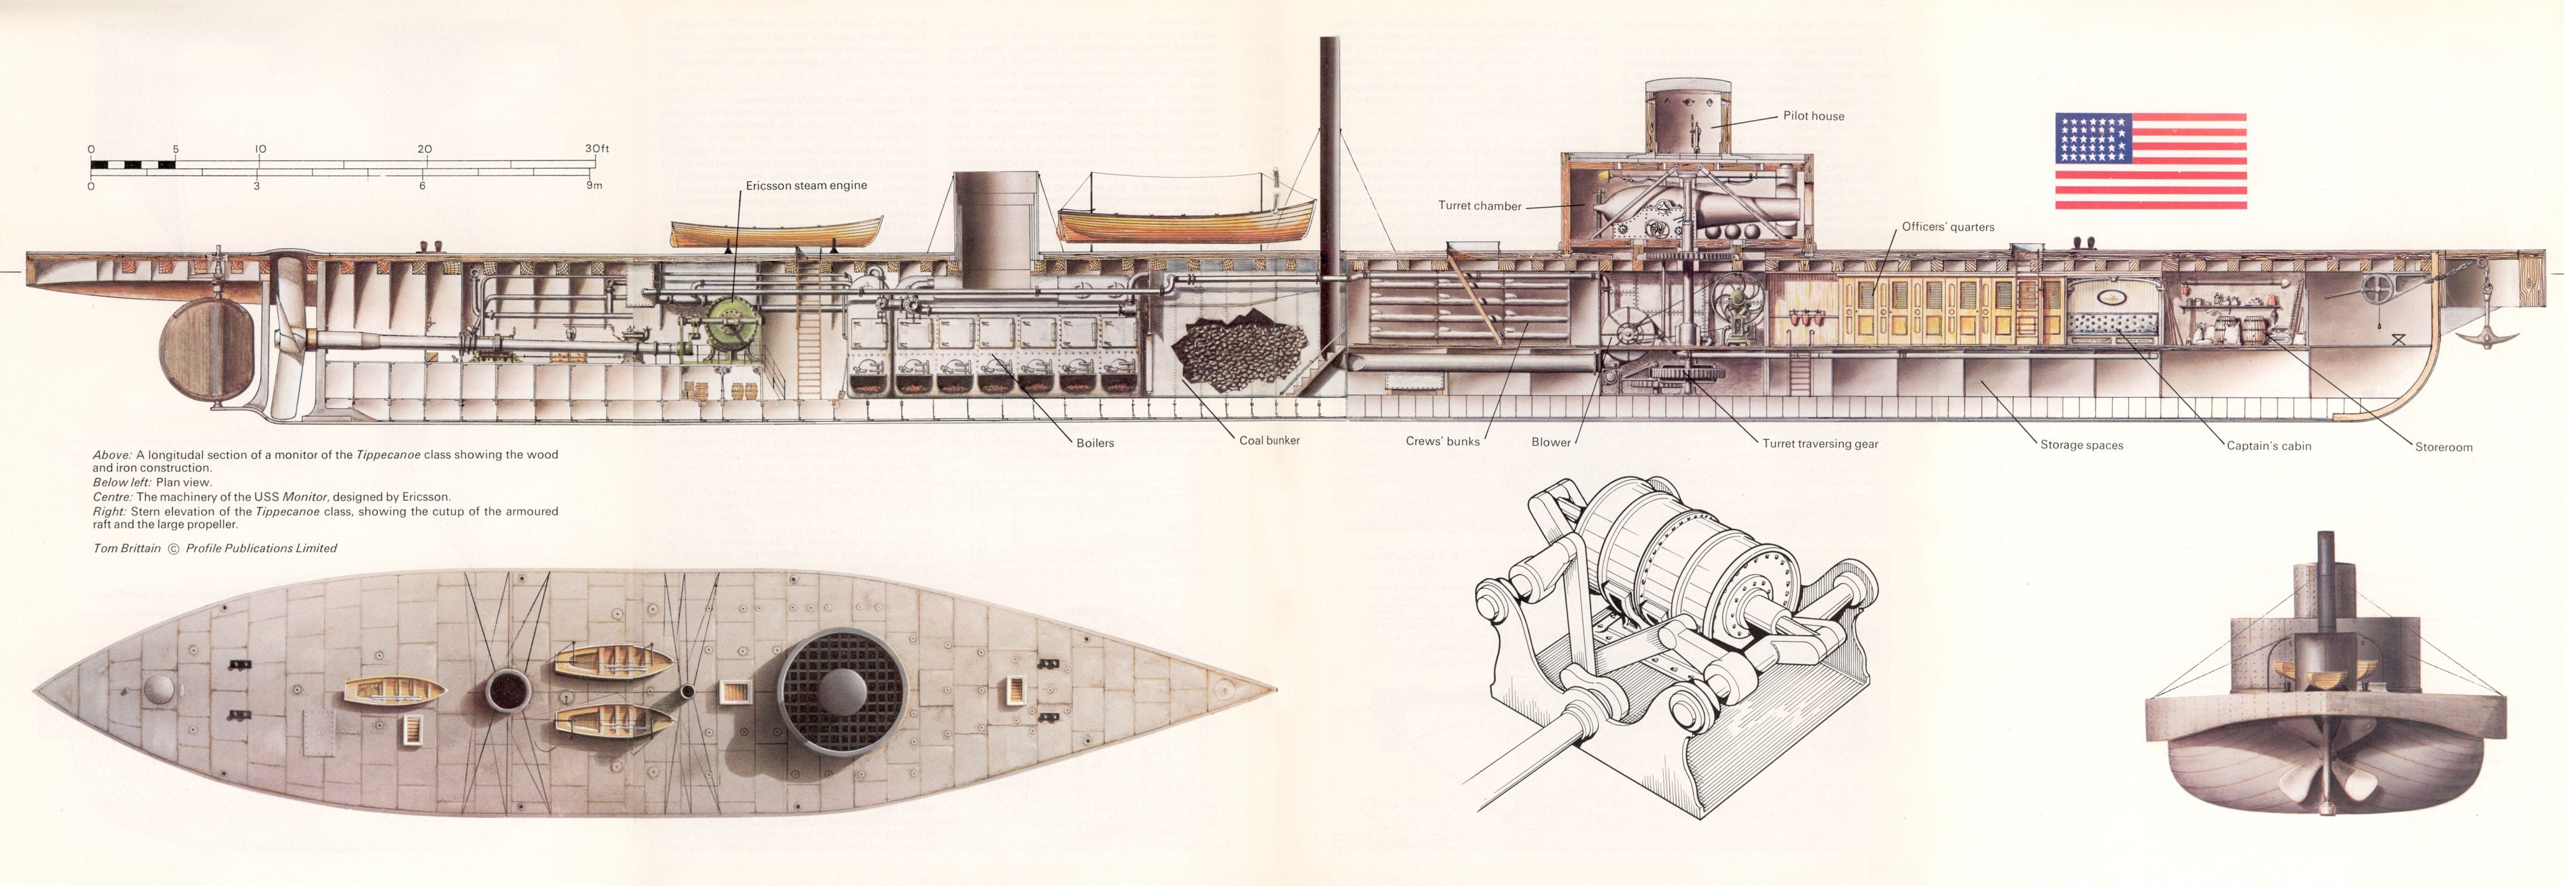 What were the weaknesses of the USS Monitor and how were they addressed in  subsequent ships of the monitor type? - QuoraQuora